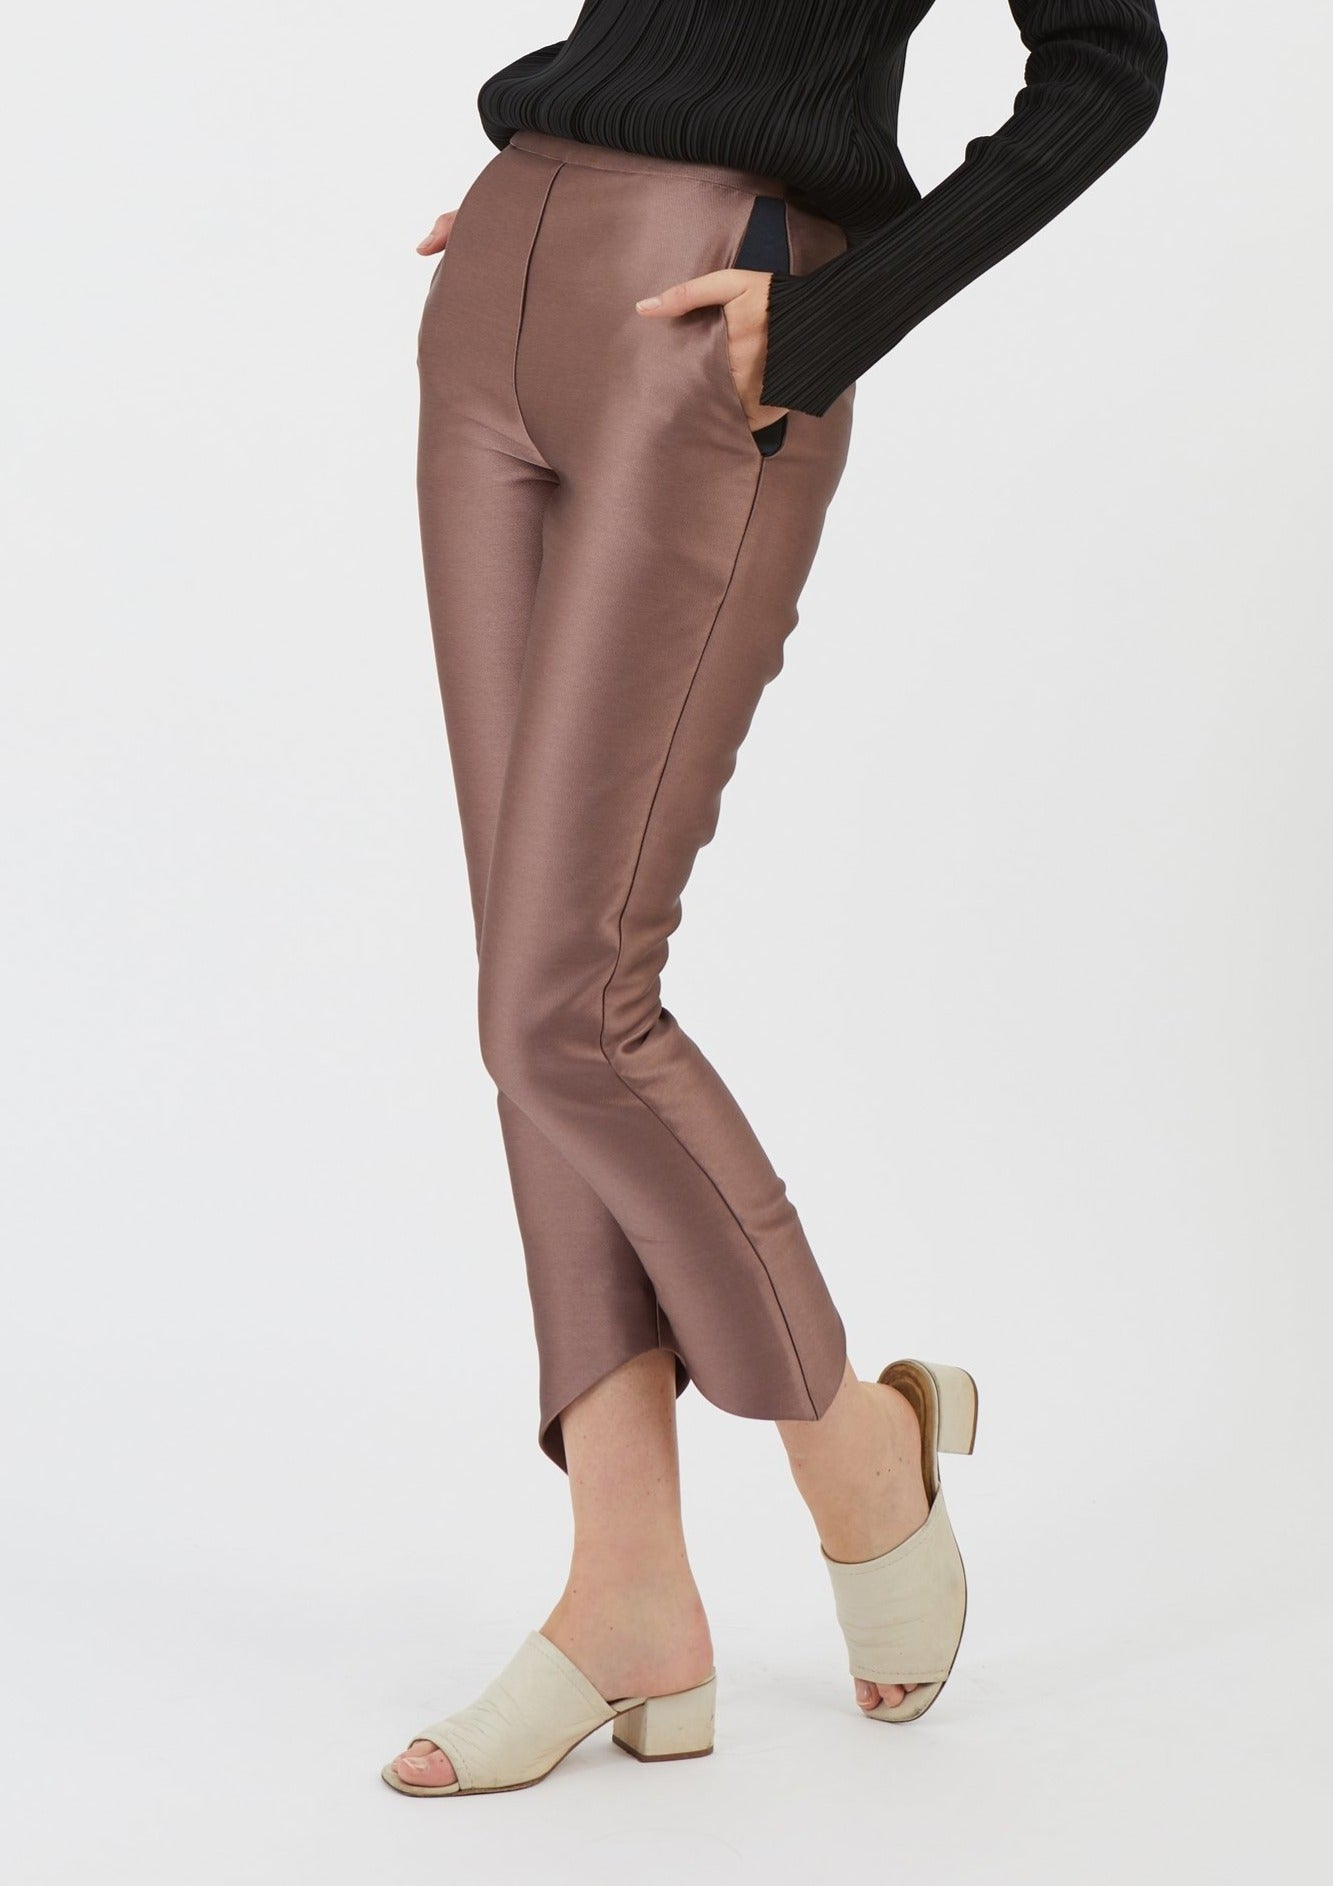 Pantalon Ninou - Satin Rose - Pantalon